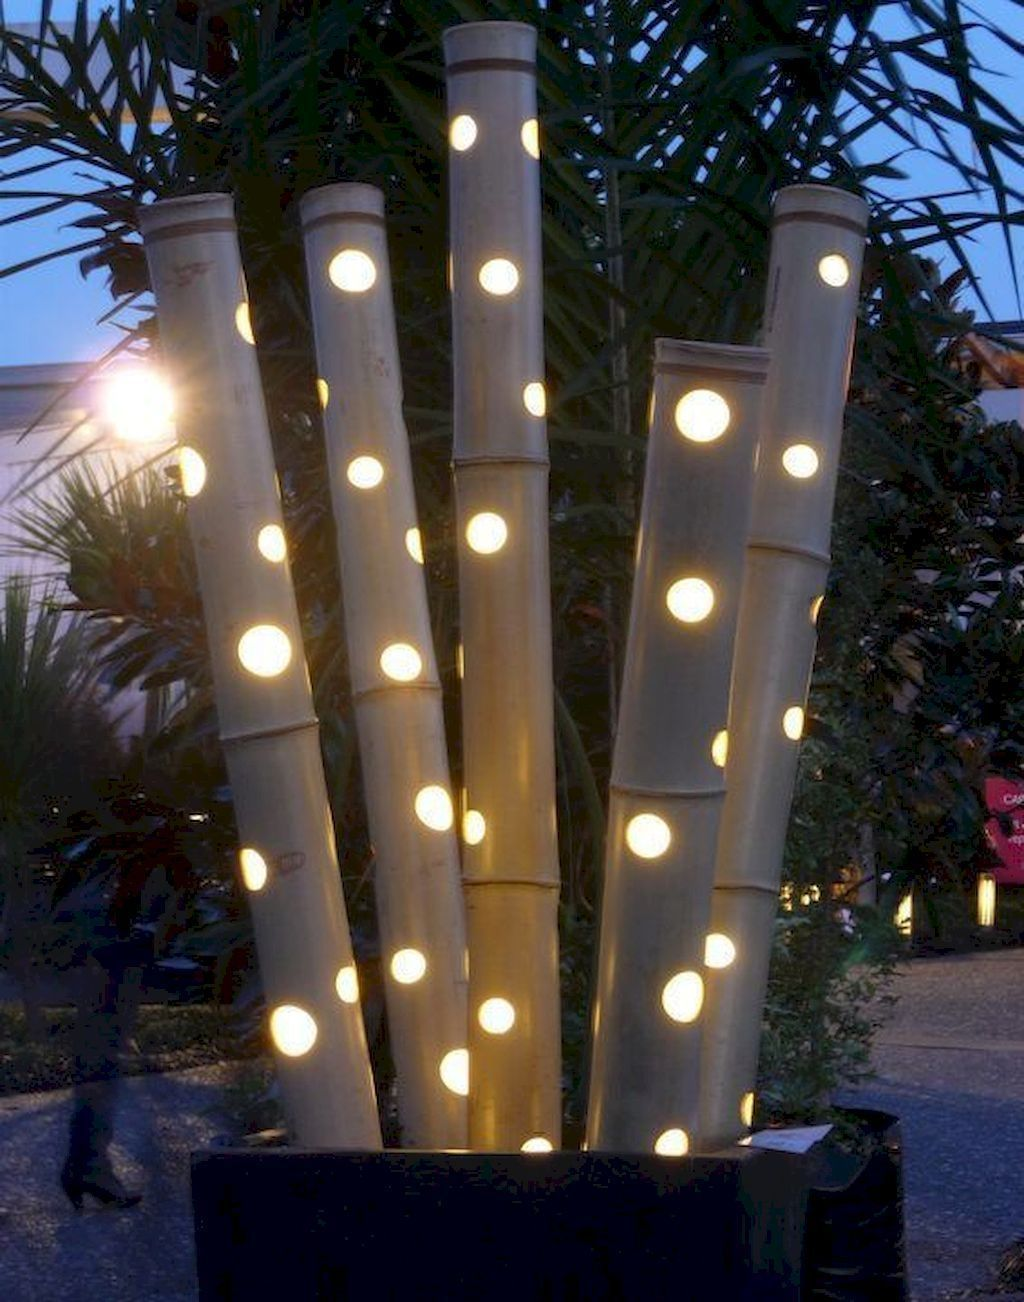 30 Marvelous Garden Lighting Design Ideas In 2020 Garden Lighting Design Diy Outdoor Lighting Backyard Lighting